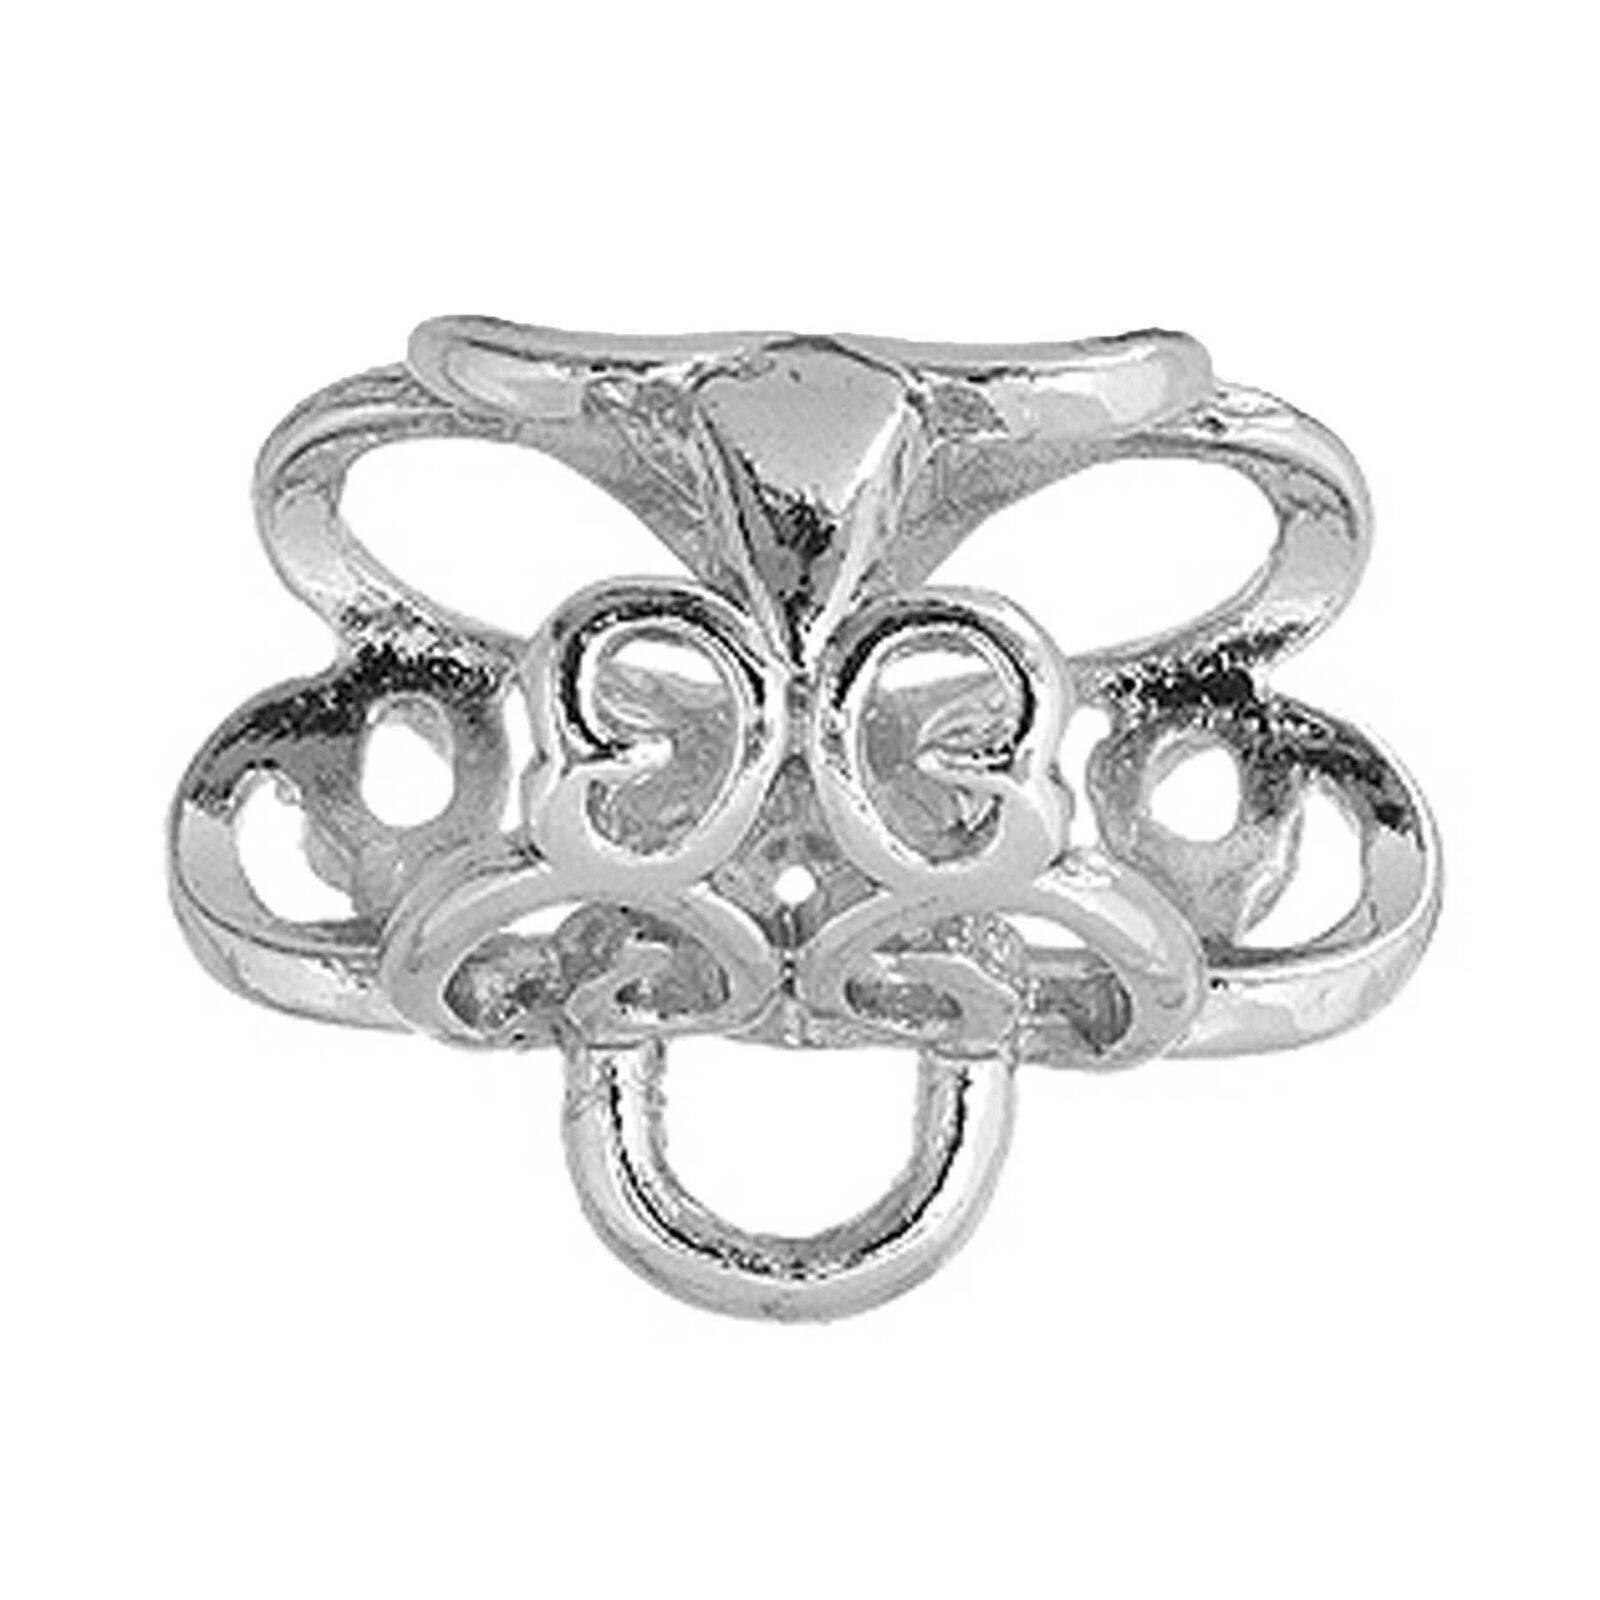 Silver Plated Kumihimo Jewellery pendant bail with centre flower design K140